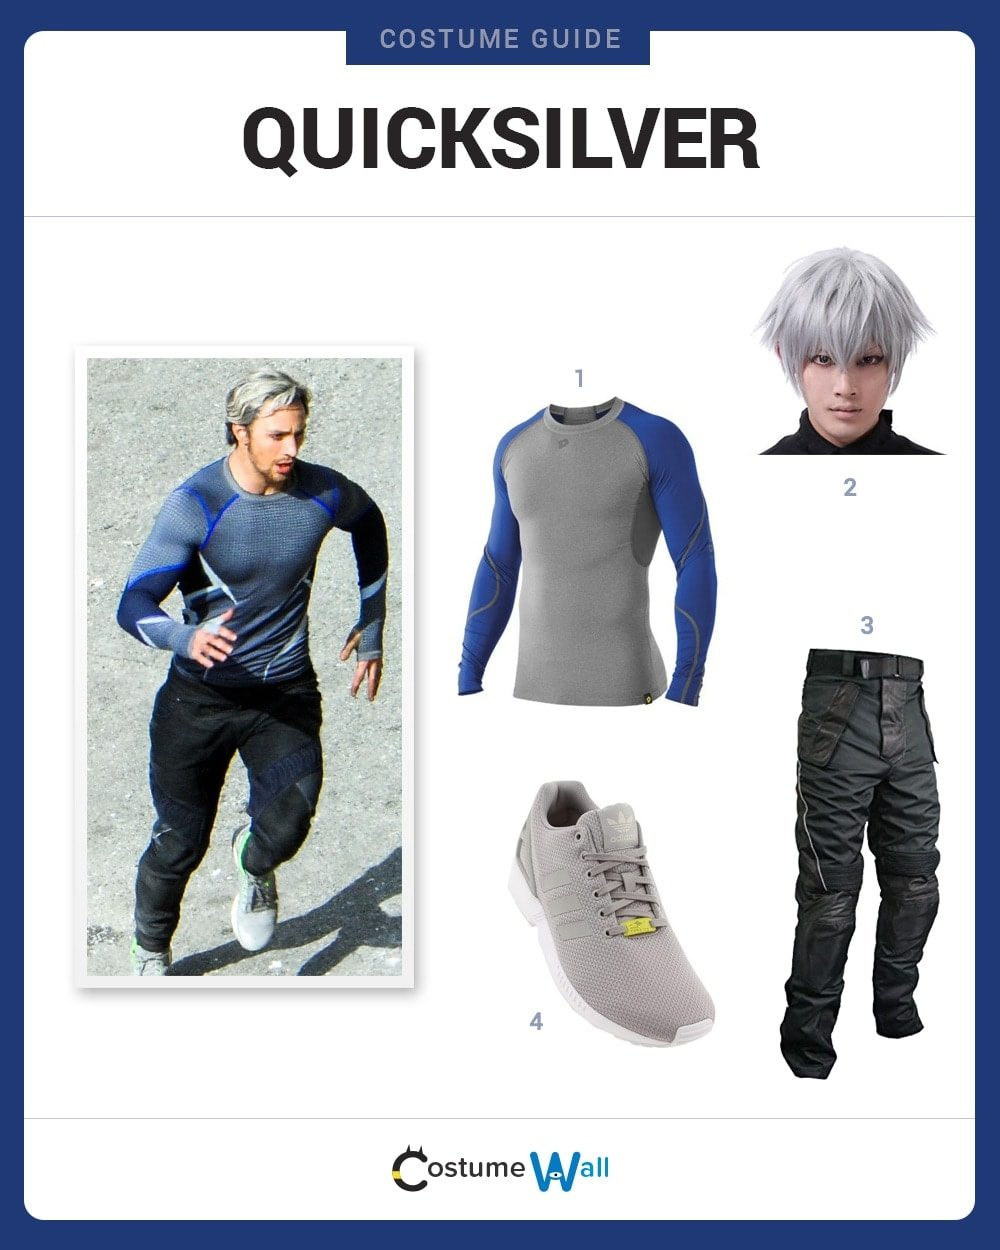 Quicksilver Costume Guide